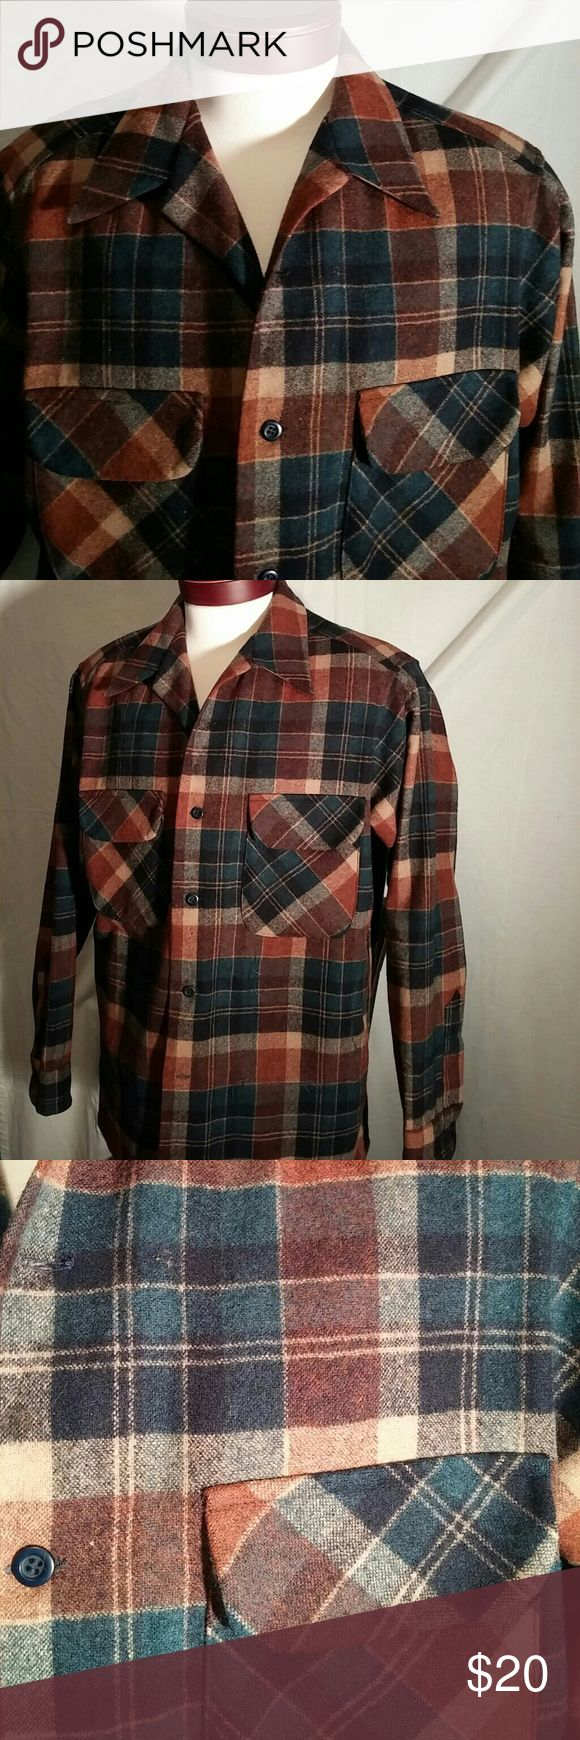 Vintage Pendleton plaid shirt Very cool, very nice shape vintage men's Pendleton blue and brown plaid shirt. Hundred percent wool but still hand washable. Someone at some point sewed in in side pockets in the shirt. You can see on the outside the stitching but not much it Blends in nicely. Pendleton Shirts